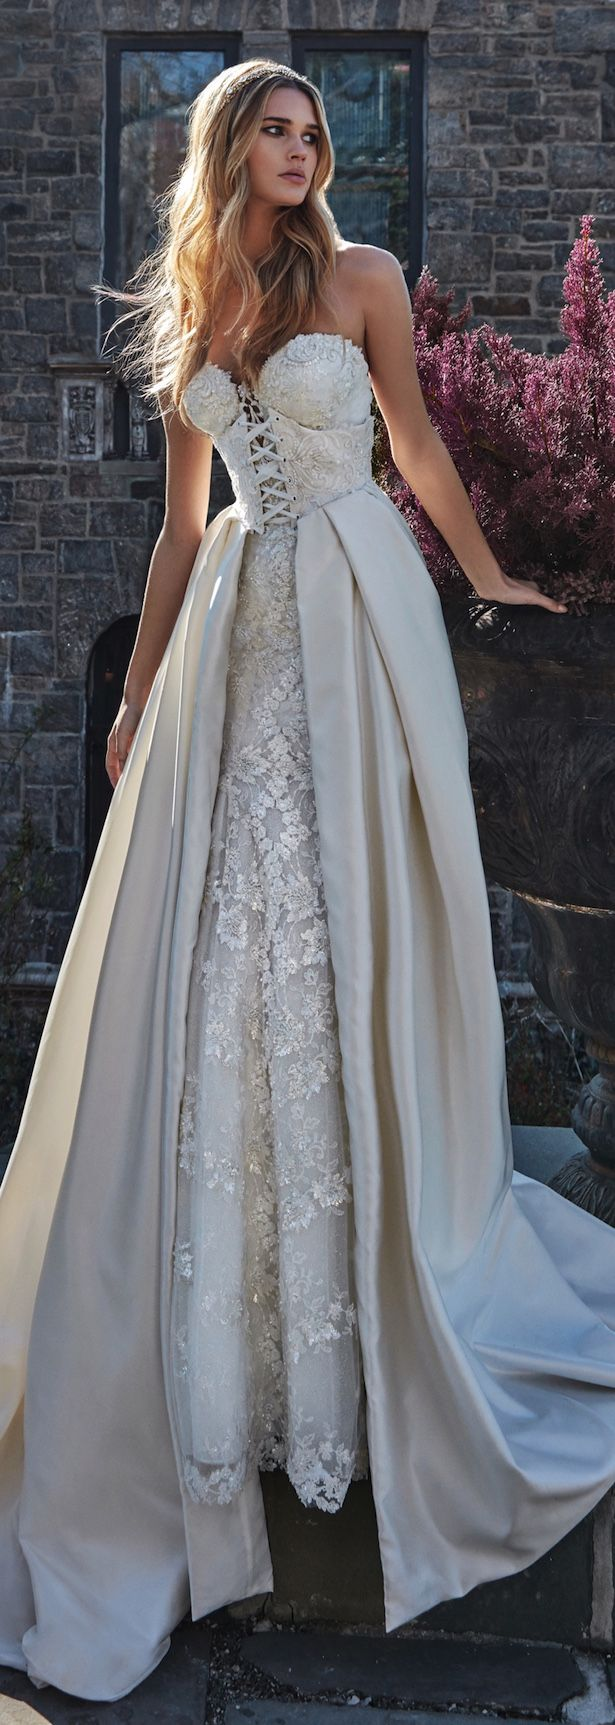 XP307 Ball Gown Elegant Satin Champagne Wedding Dress,Ball Gown Lace ...